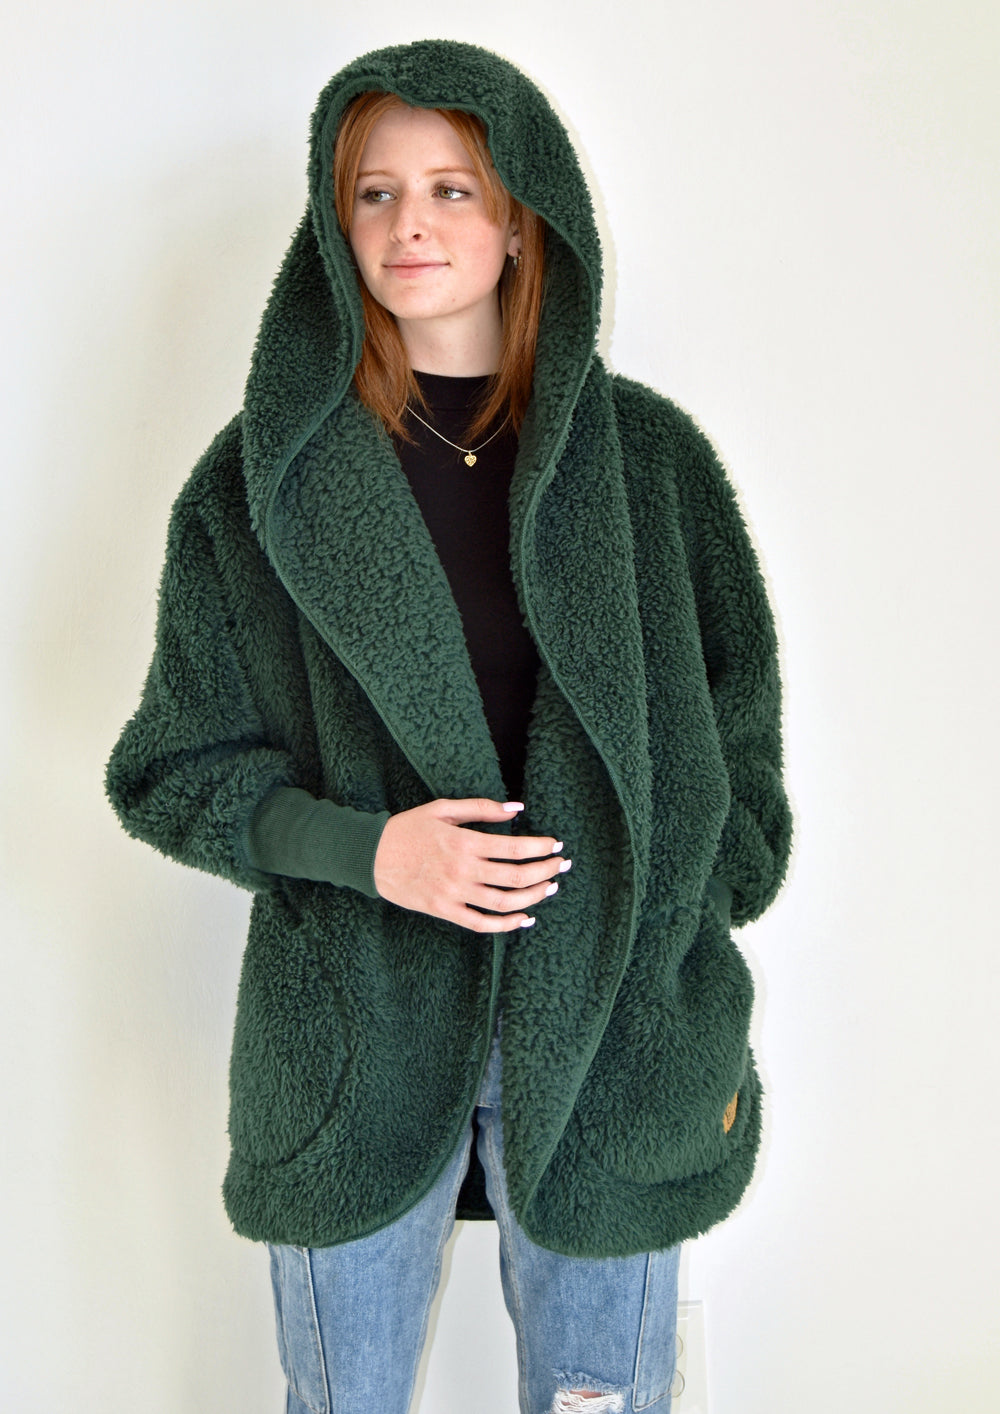 Fluffy Sweater Body Wrap - Emerald Forest